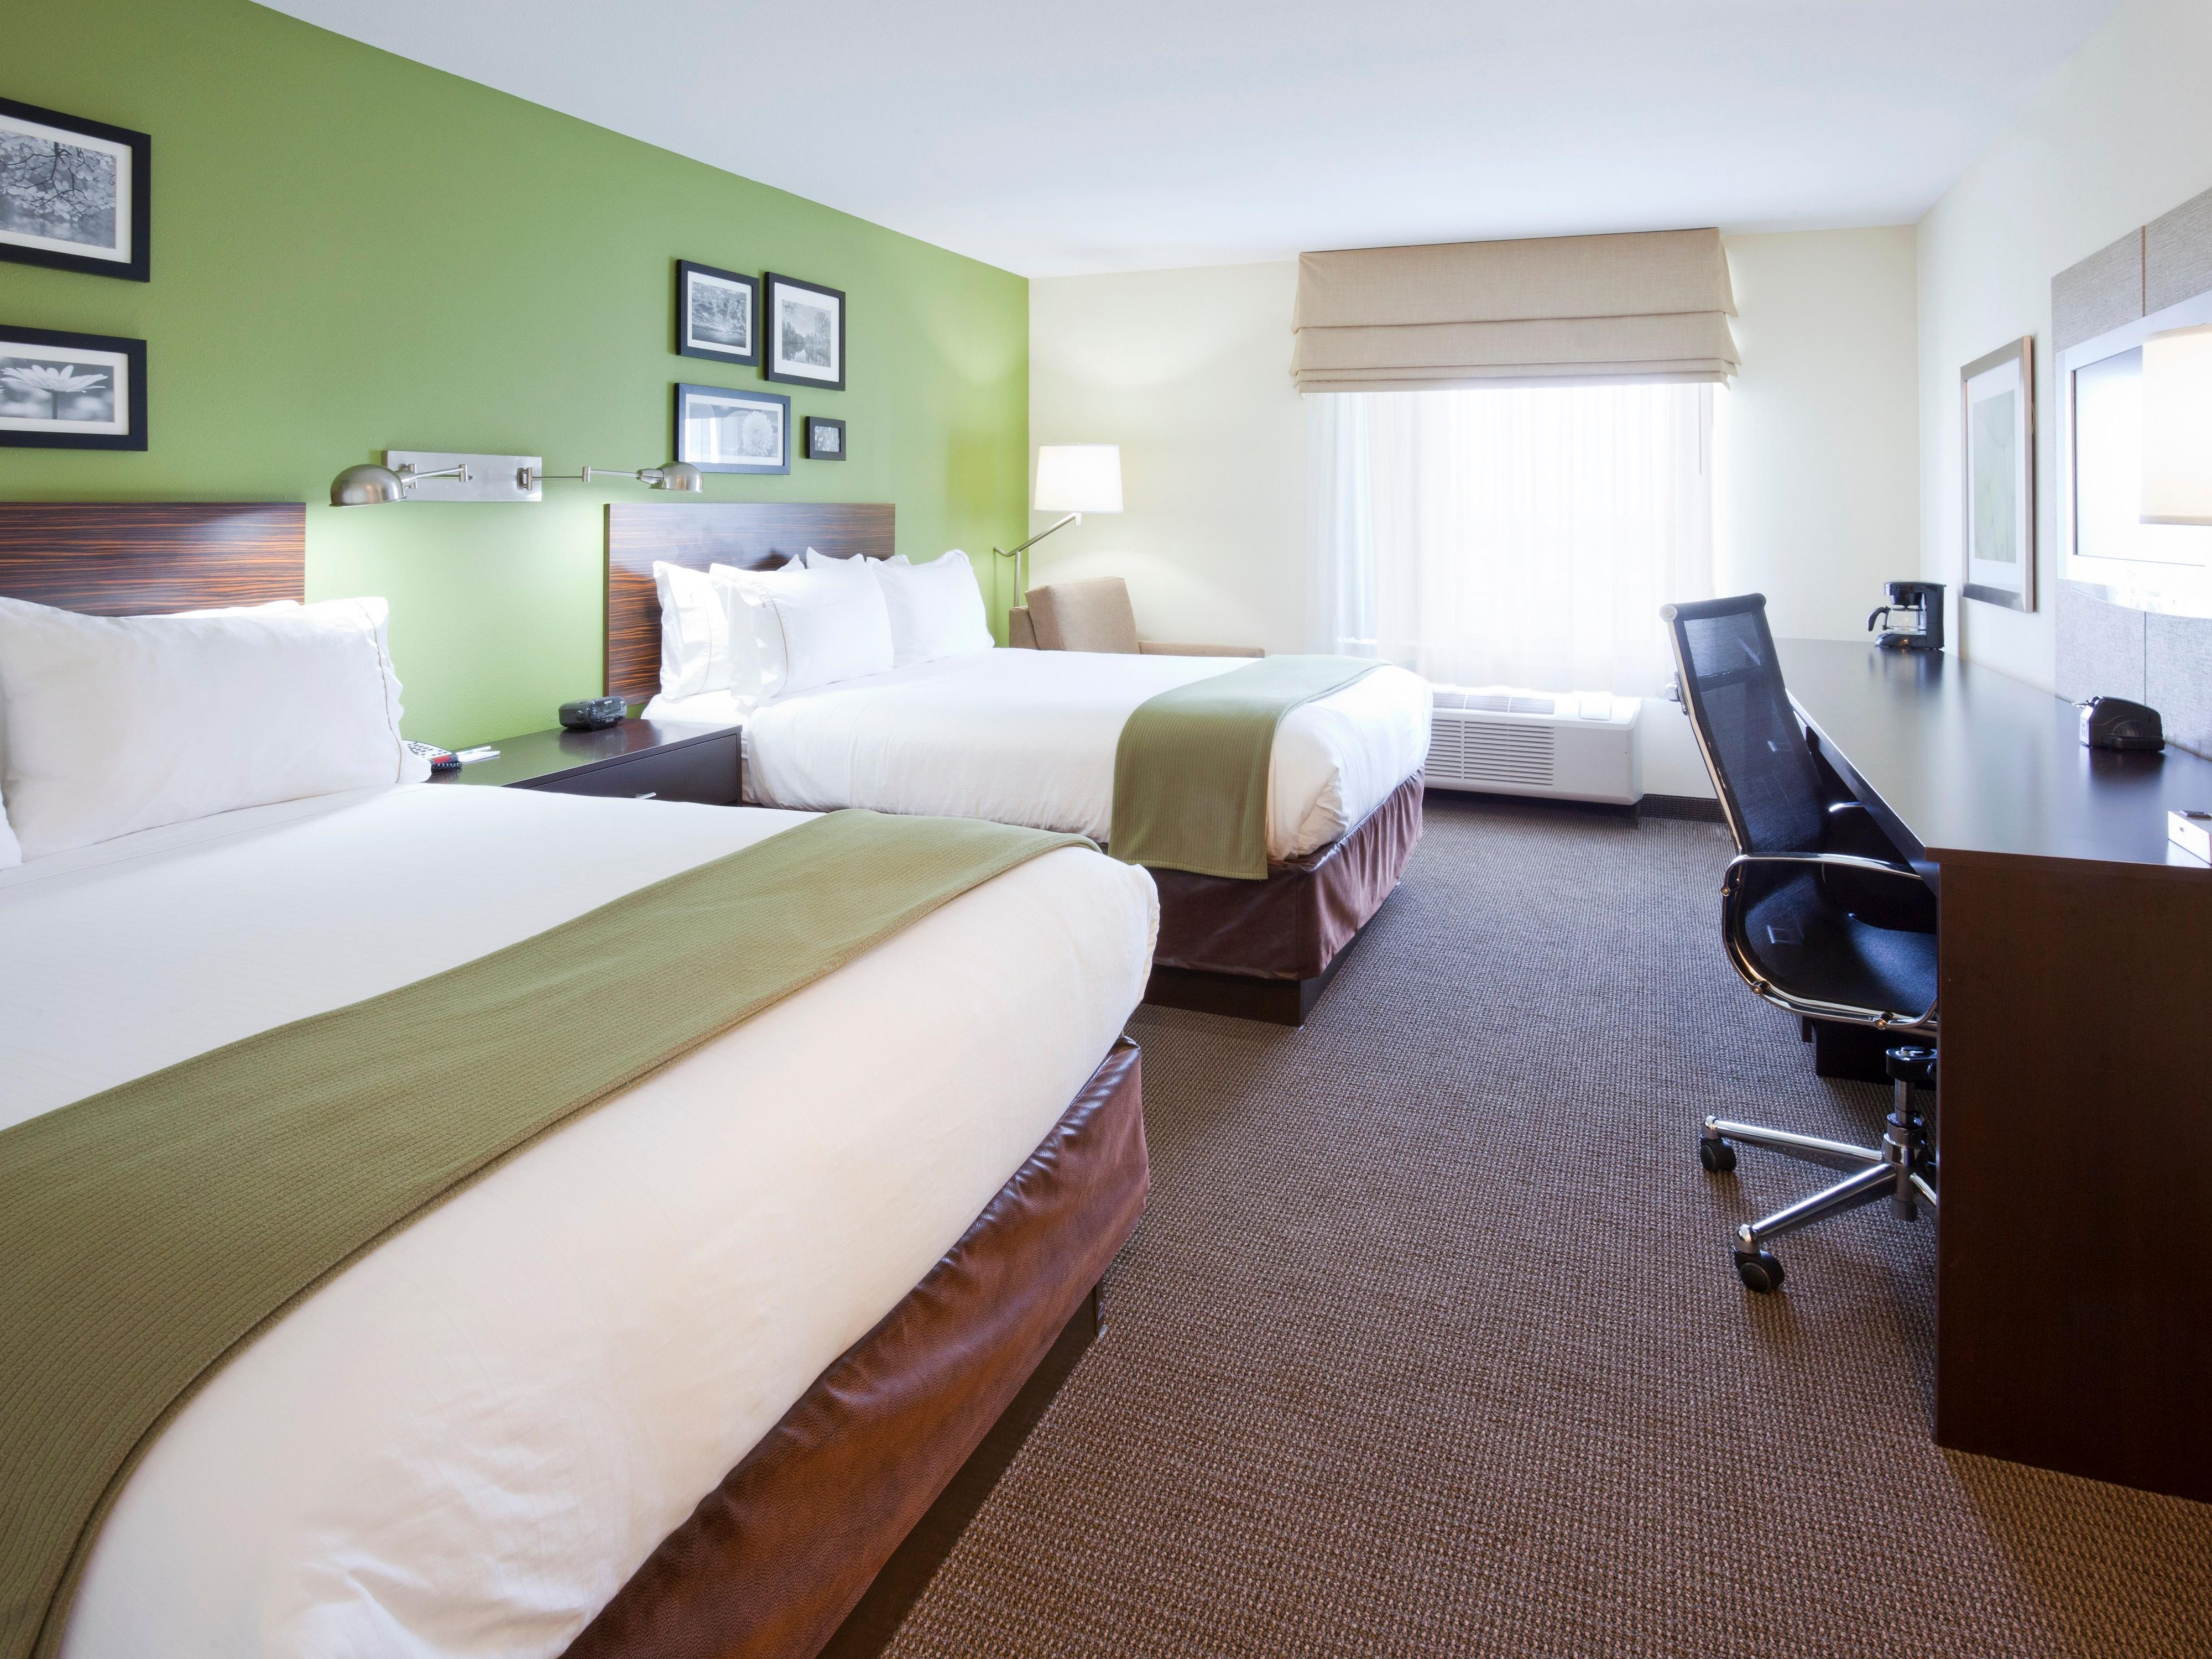 Our standard rooms all include microwave, fridge, and coffee maker